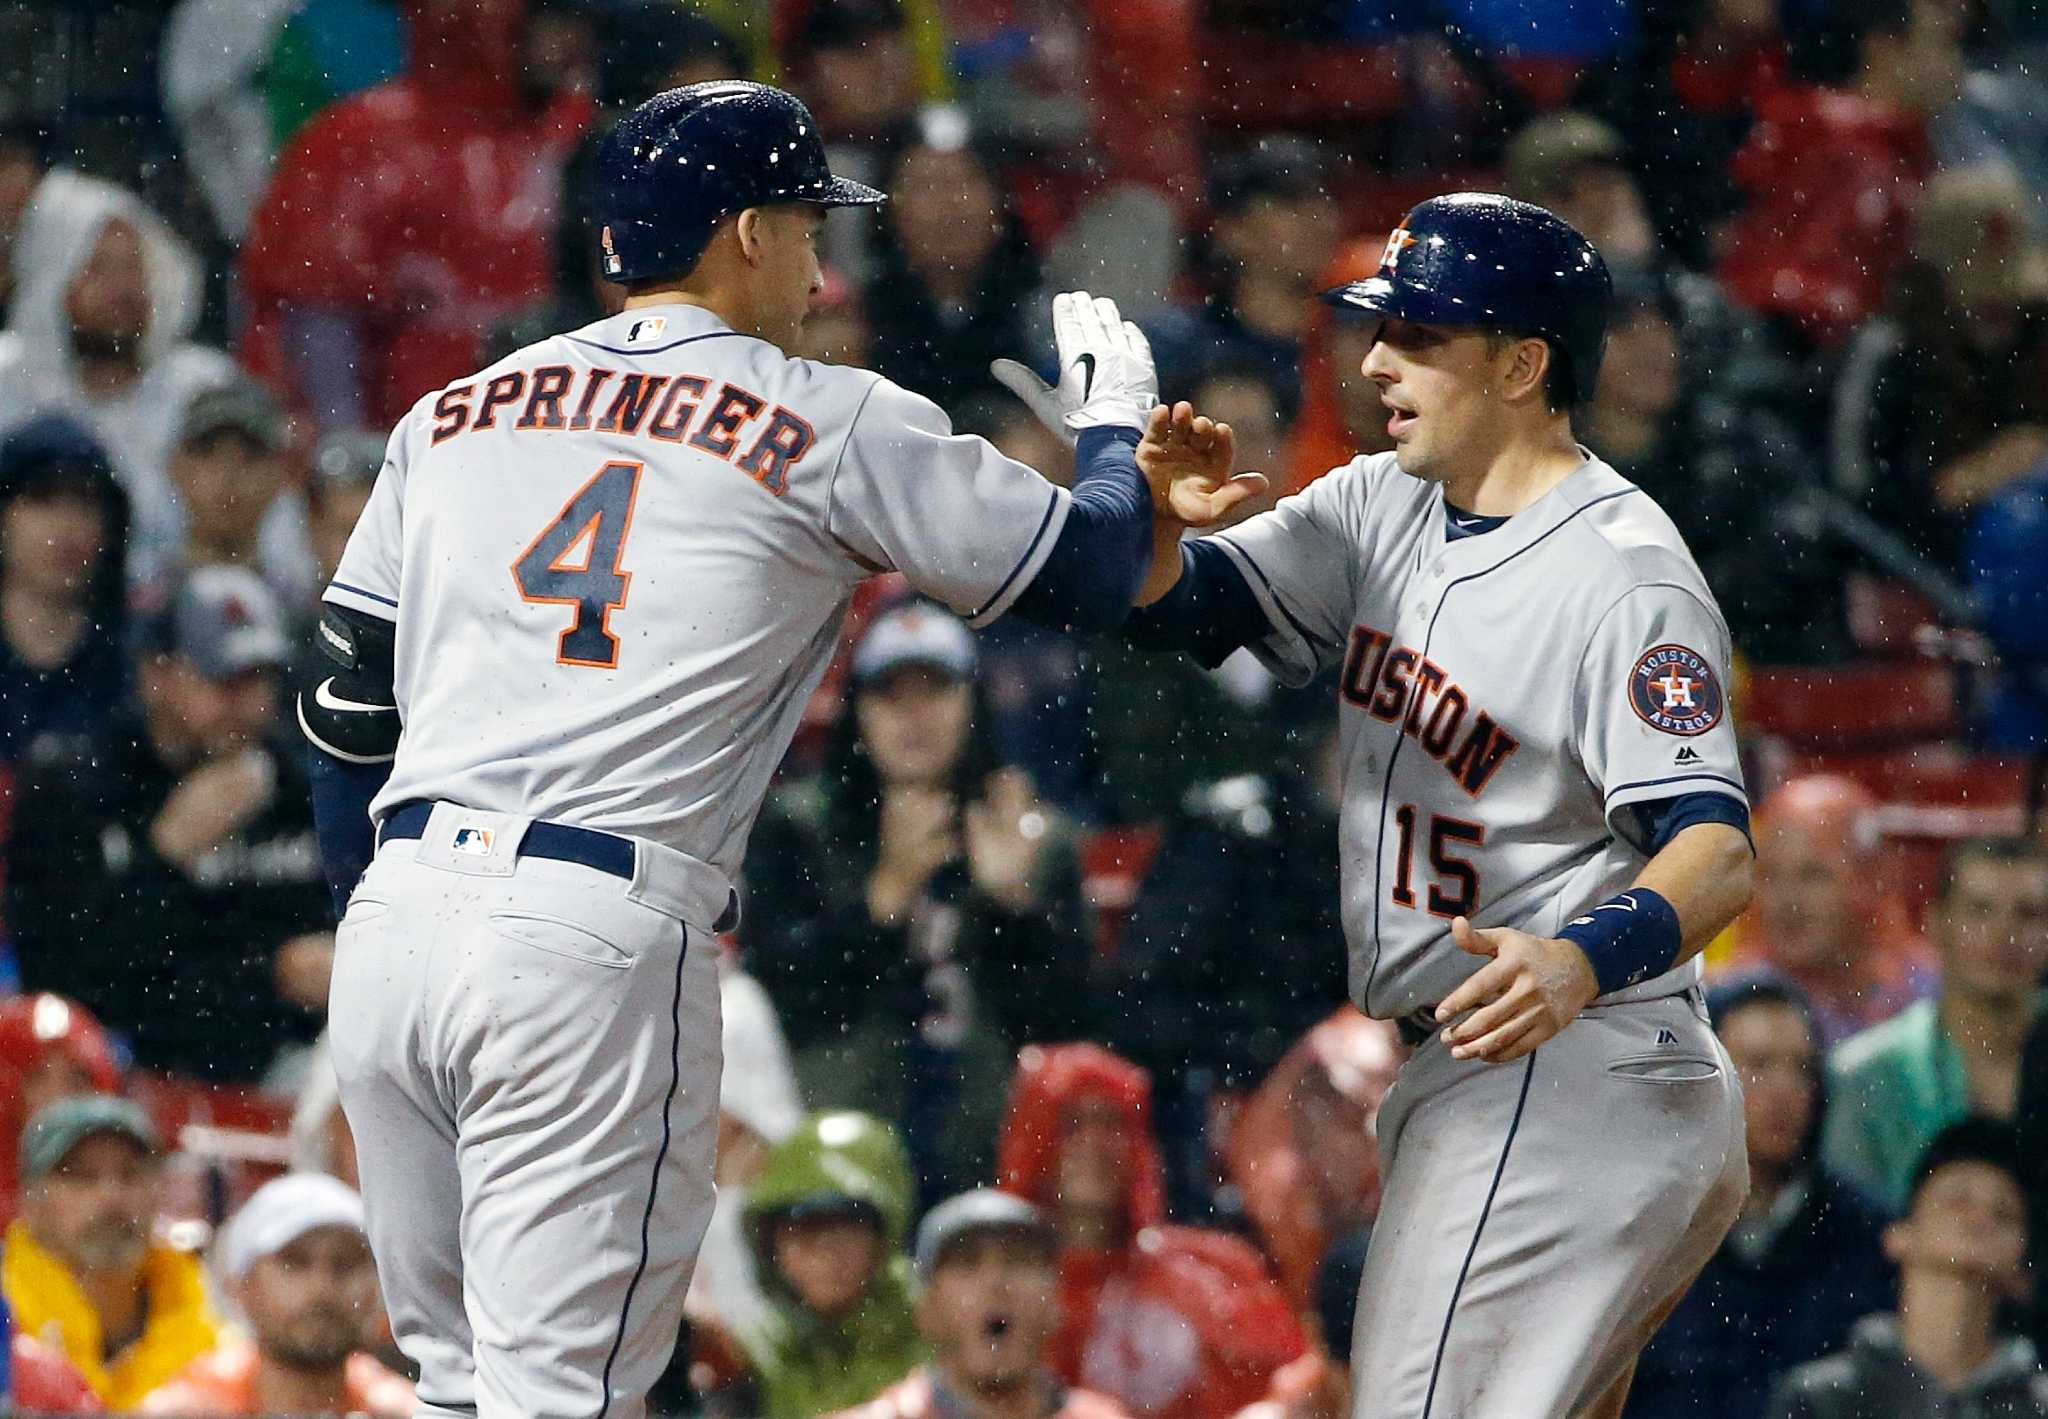 George Springer leads Astros over Red Sox - Houston Chronicle